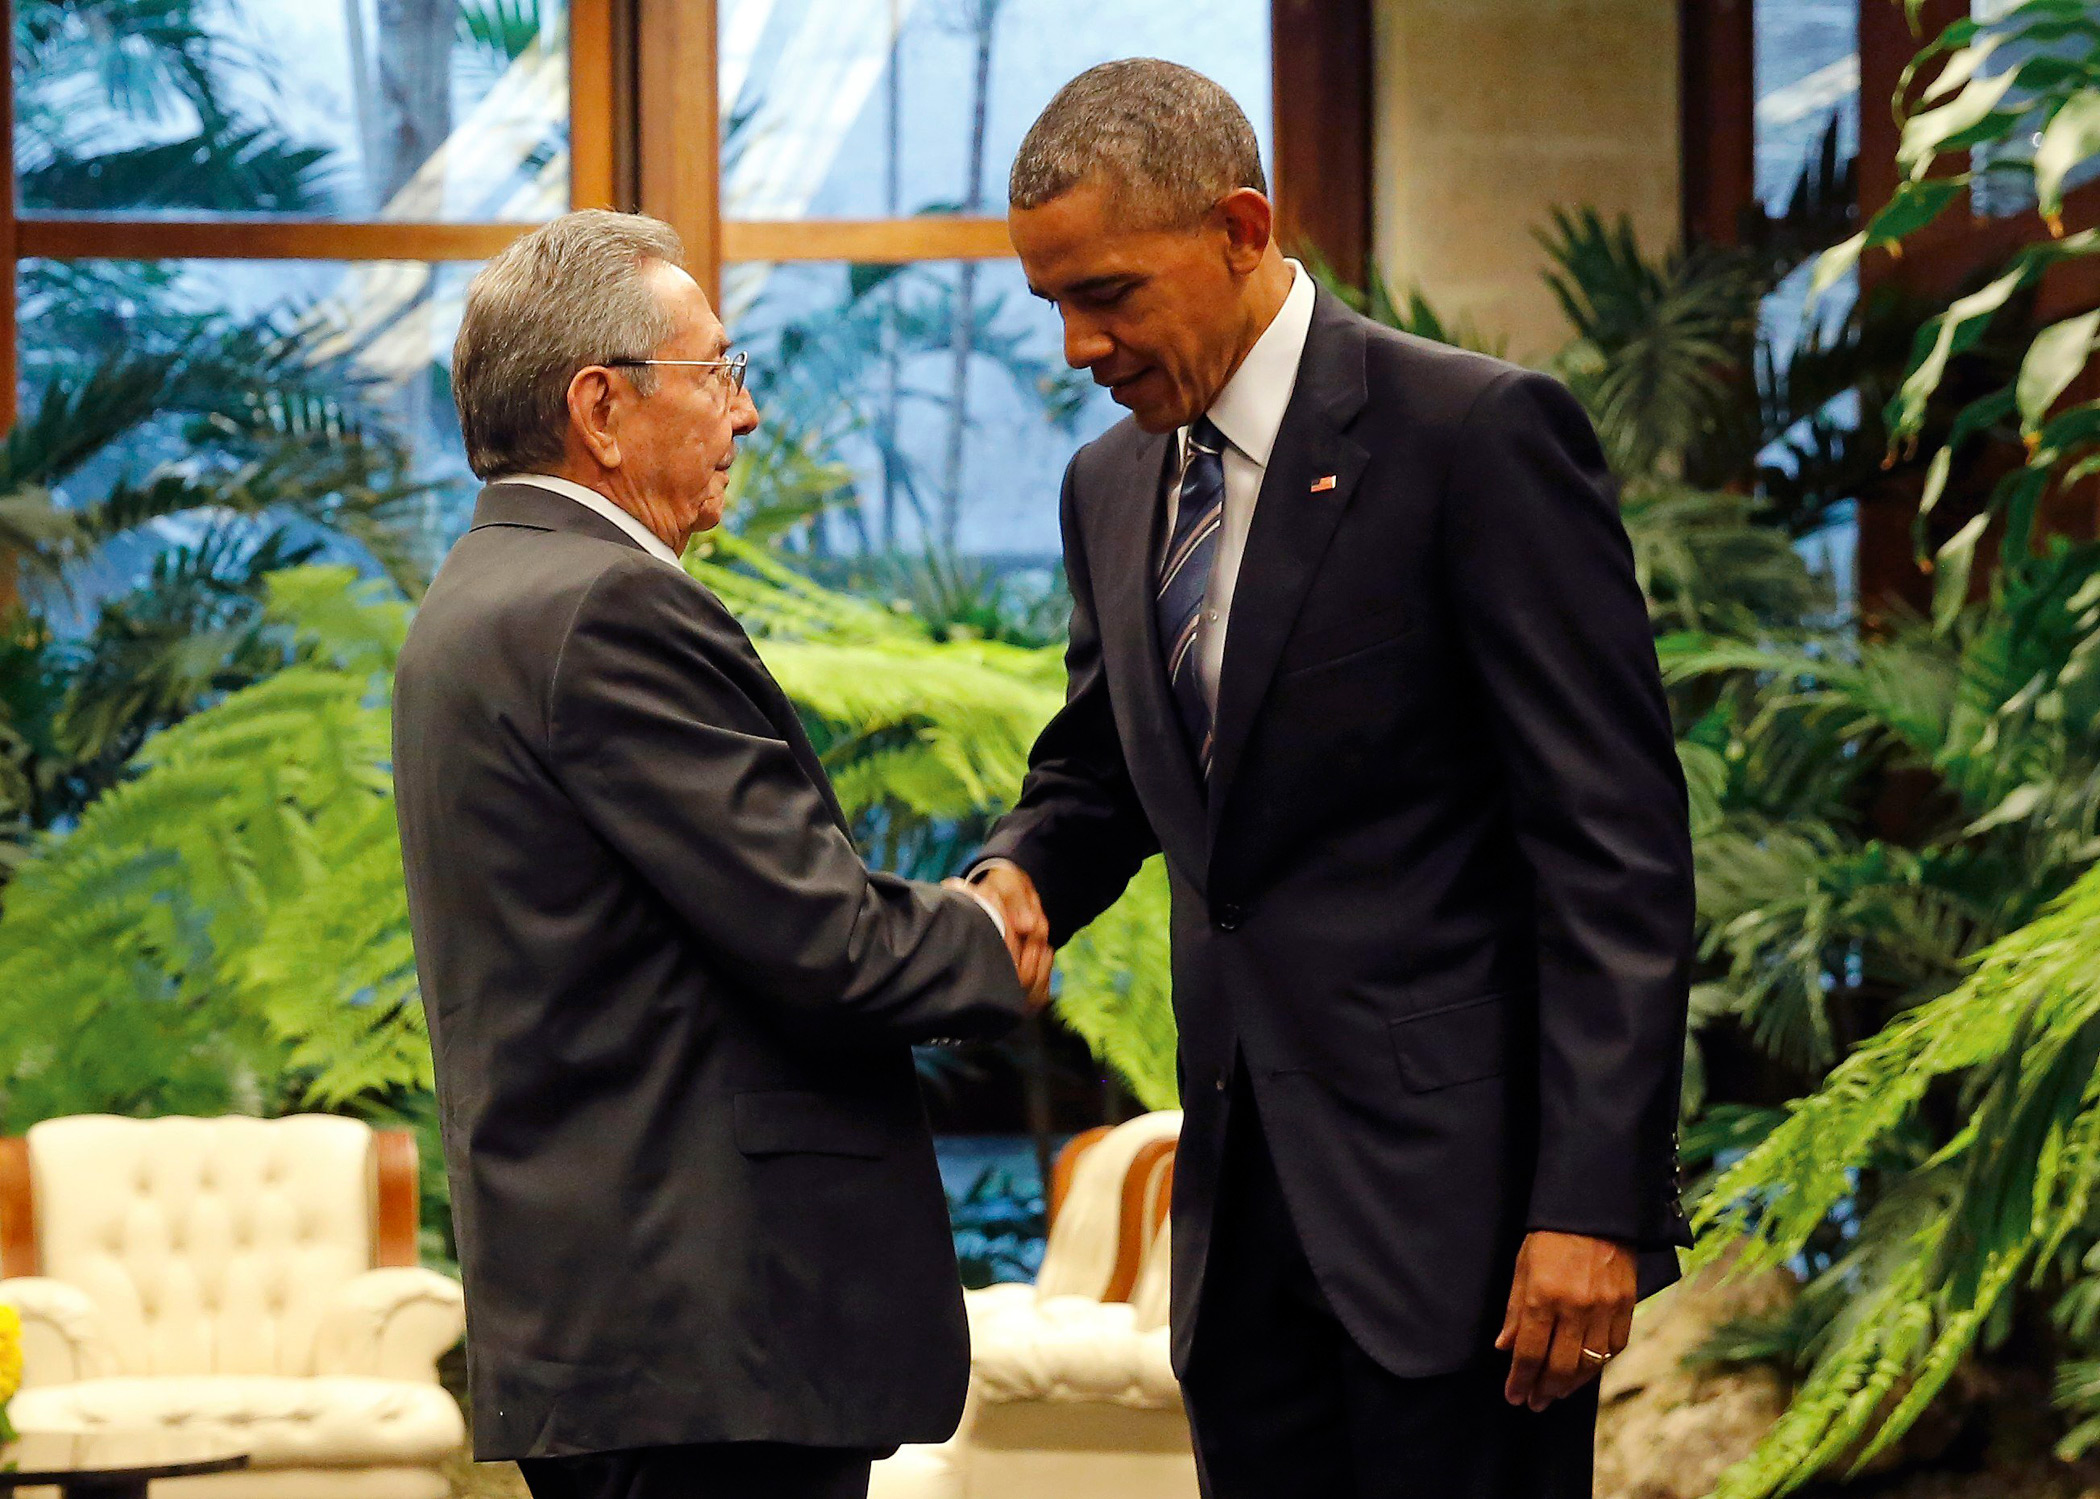 President Barack Obama and Cuba's President Raul Castro shake hands during the U.S. President's historic trip to Cuba – the first by a sitting president in 88 years - on March 21, 2016.  The meeting, held in Havana, will pave the way for closer economic ties between the two countries, more than 50 years after Cuba's revolution.